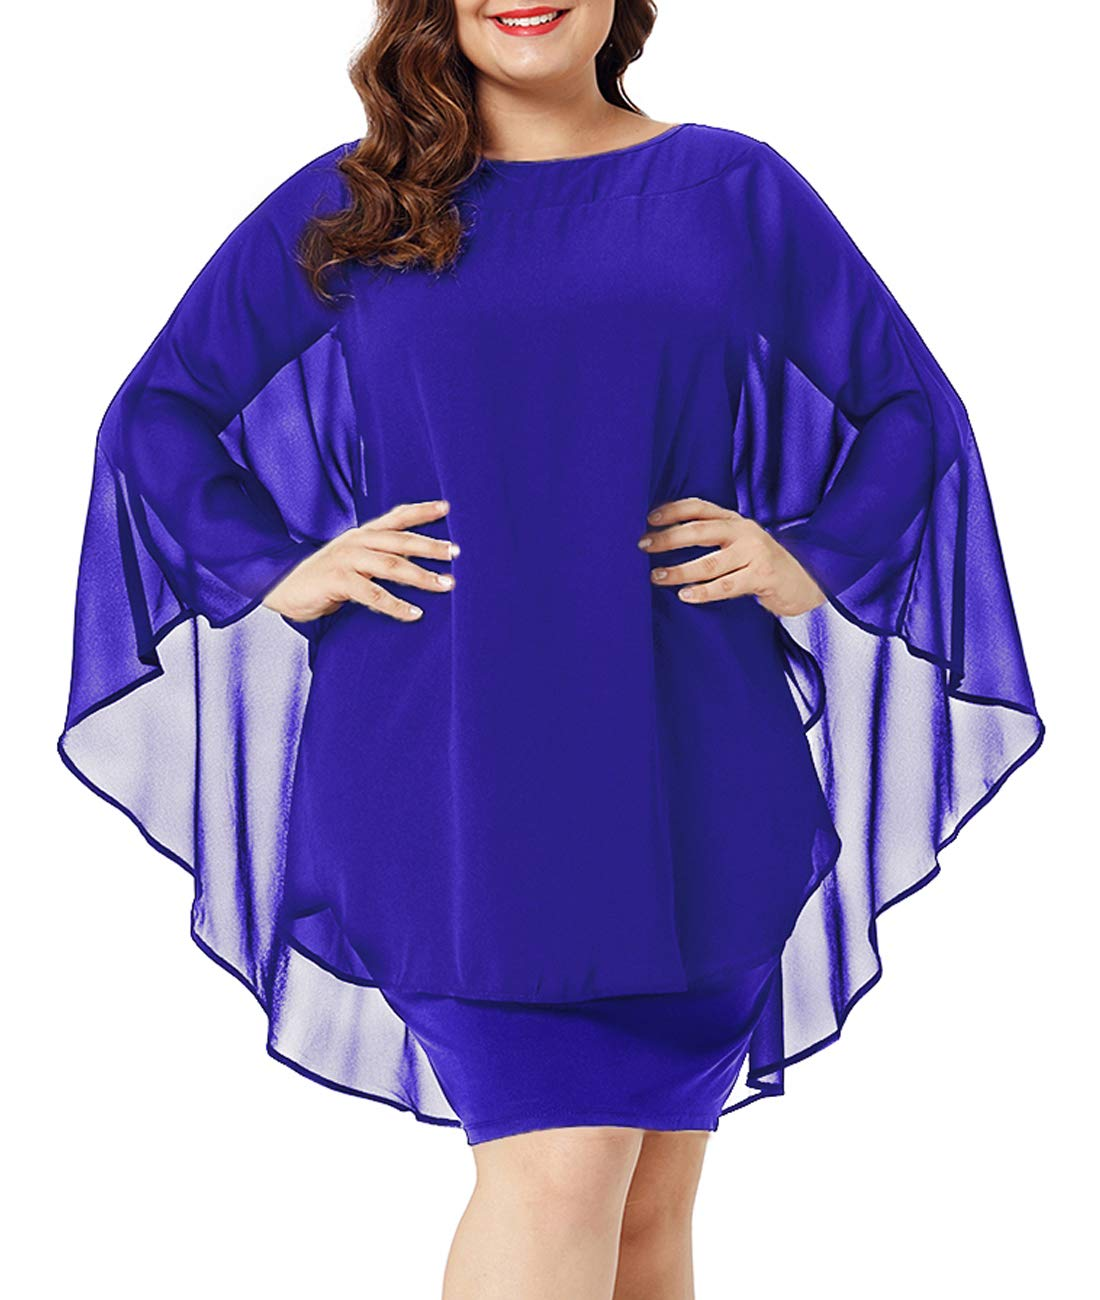 Available at Amazon: Urchics Women's Casual Chiffon Overlay Plus Size Cocktail Party Knee Length Dress